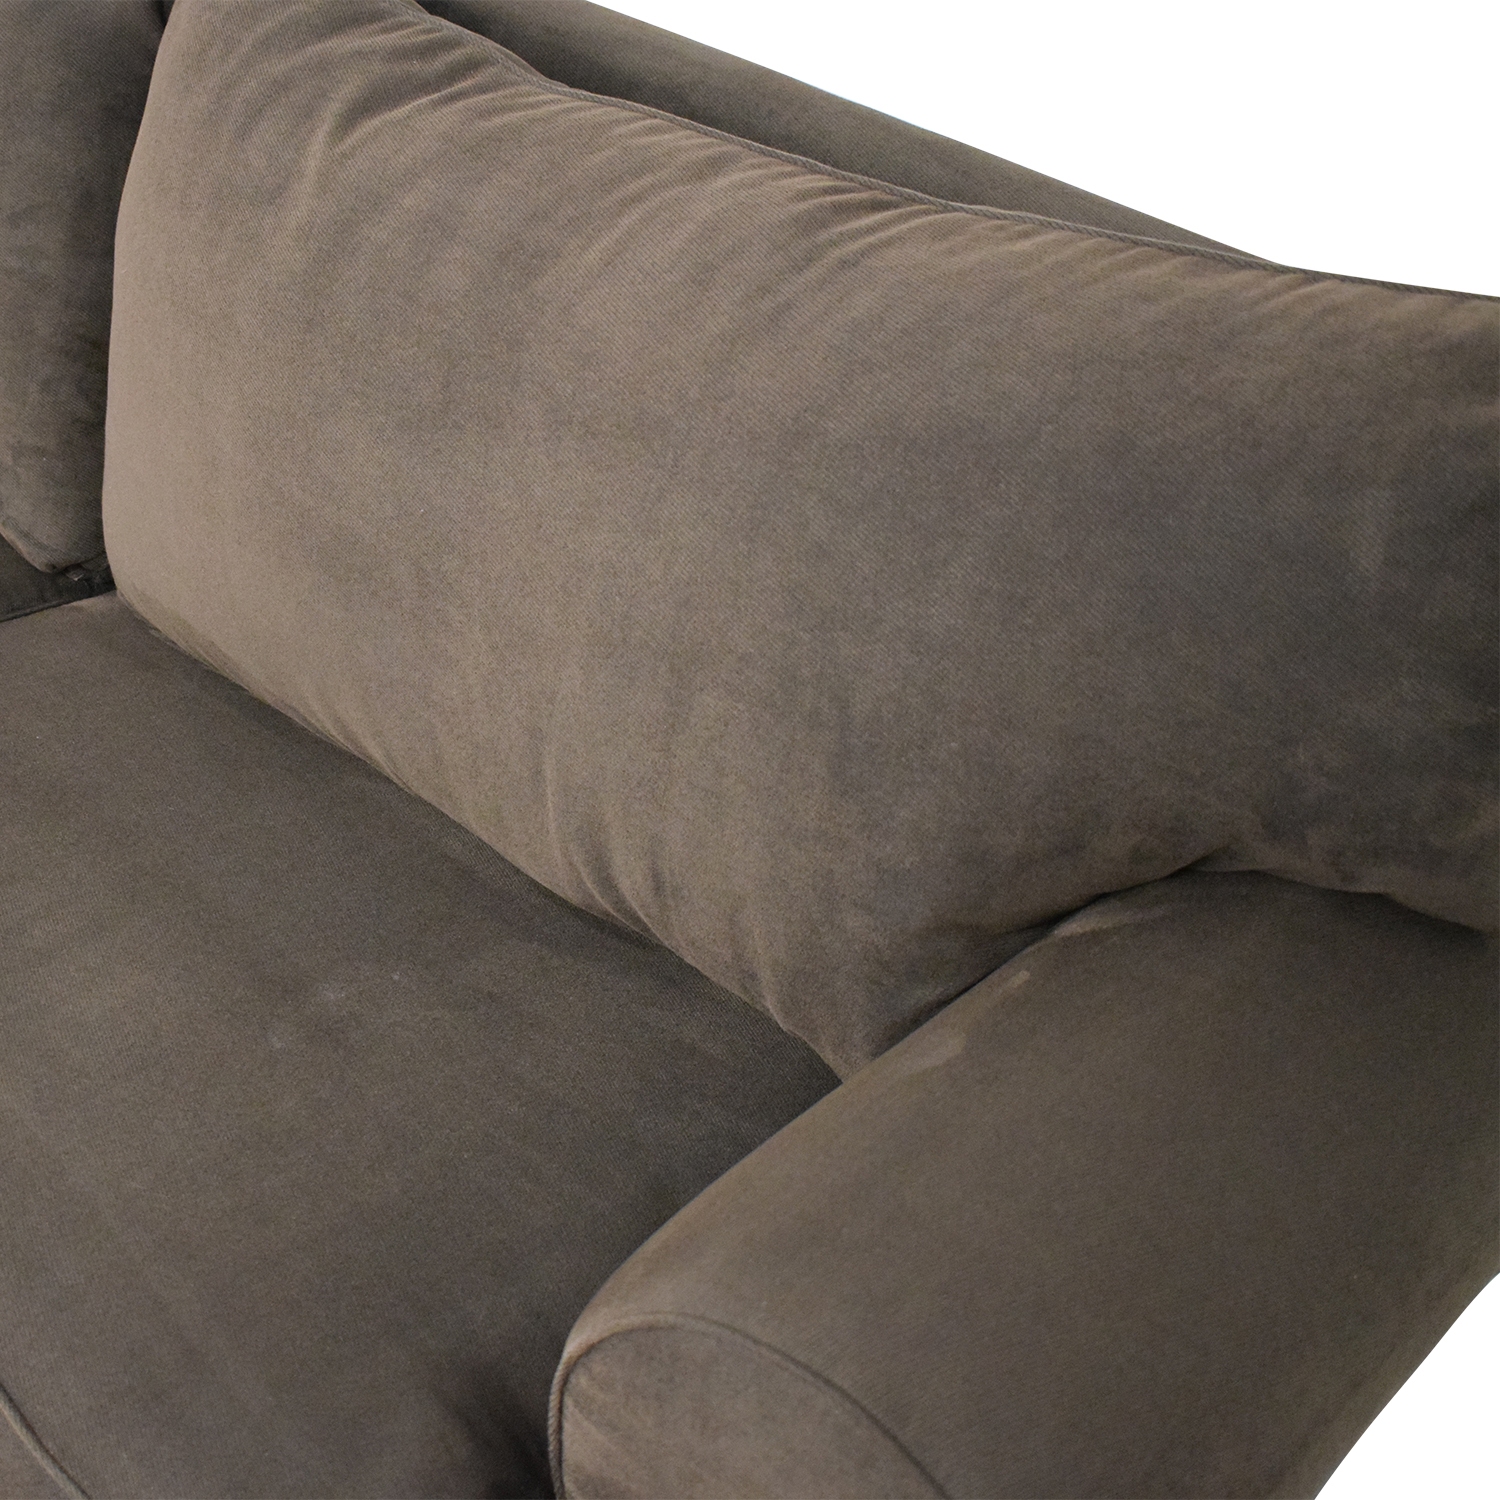 Raymour & Flanigan Two Cushion Sleeper Sofa Raymour & Flanigan